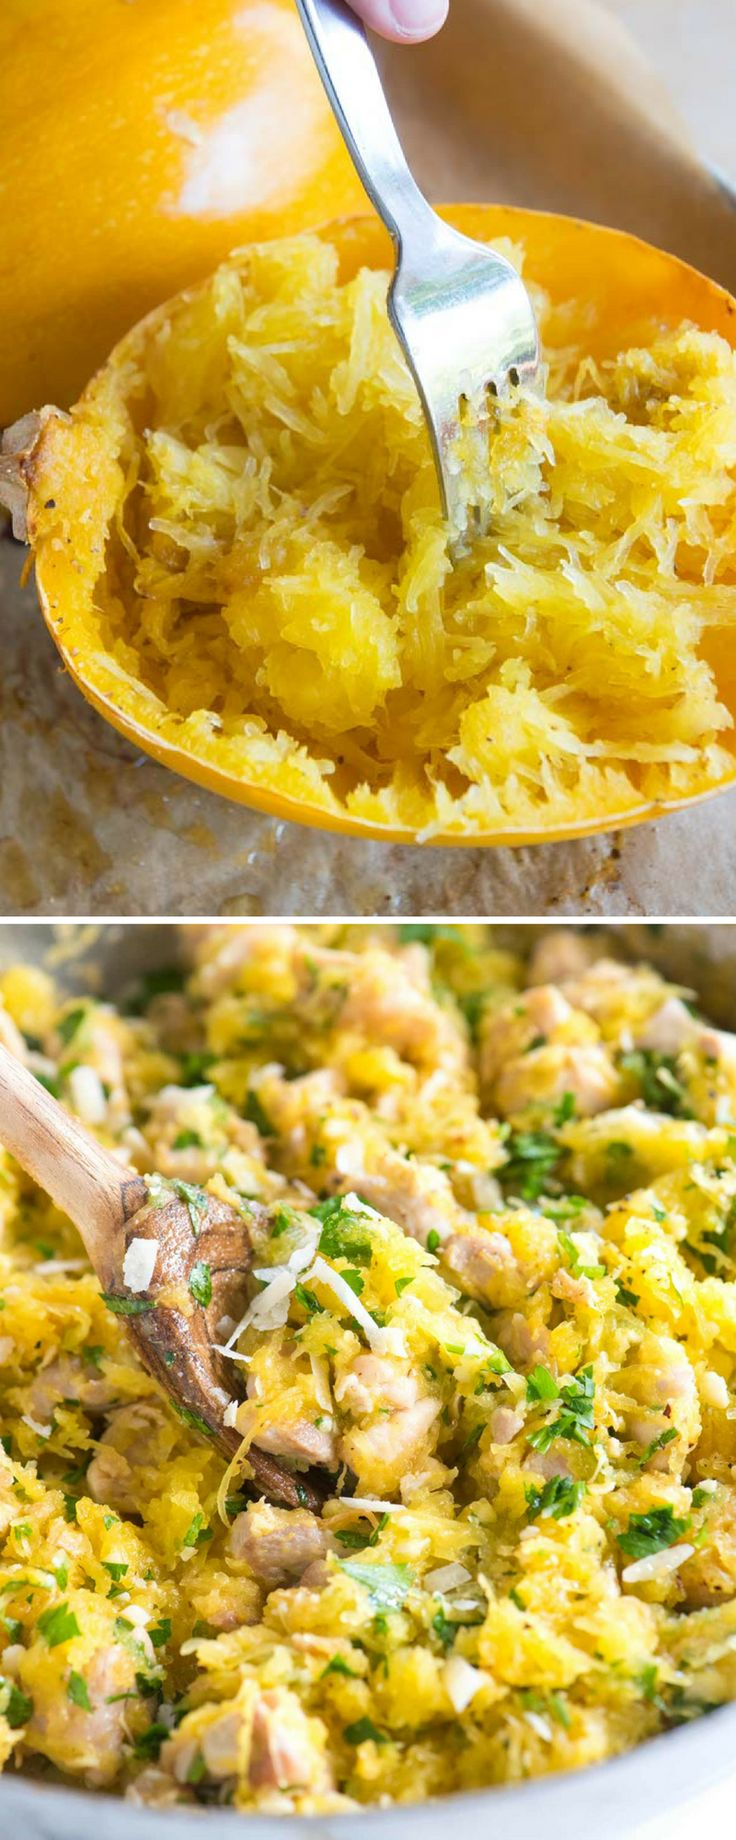 This easy and healthy spaghetti squash recipe is a total winner! We bake spaghetti squash in the oven until tender then toss it with lemon, chicken, parmesan and fresh parsley.